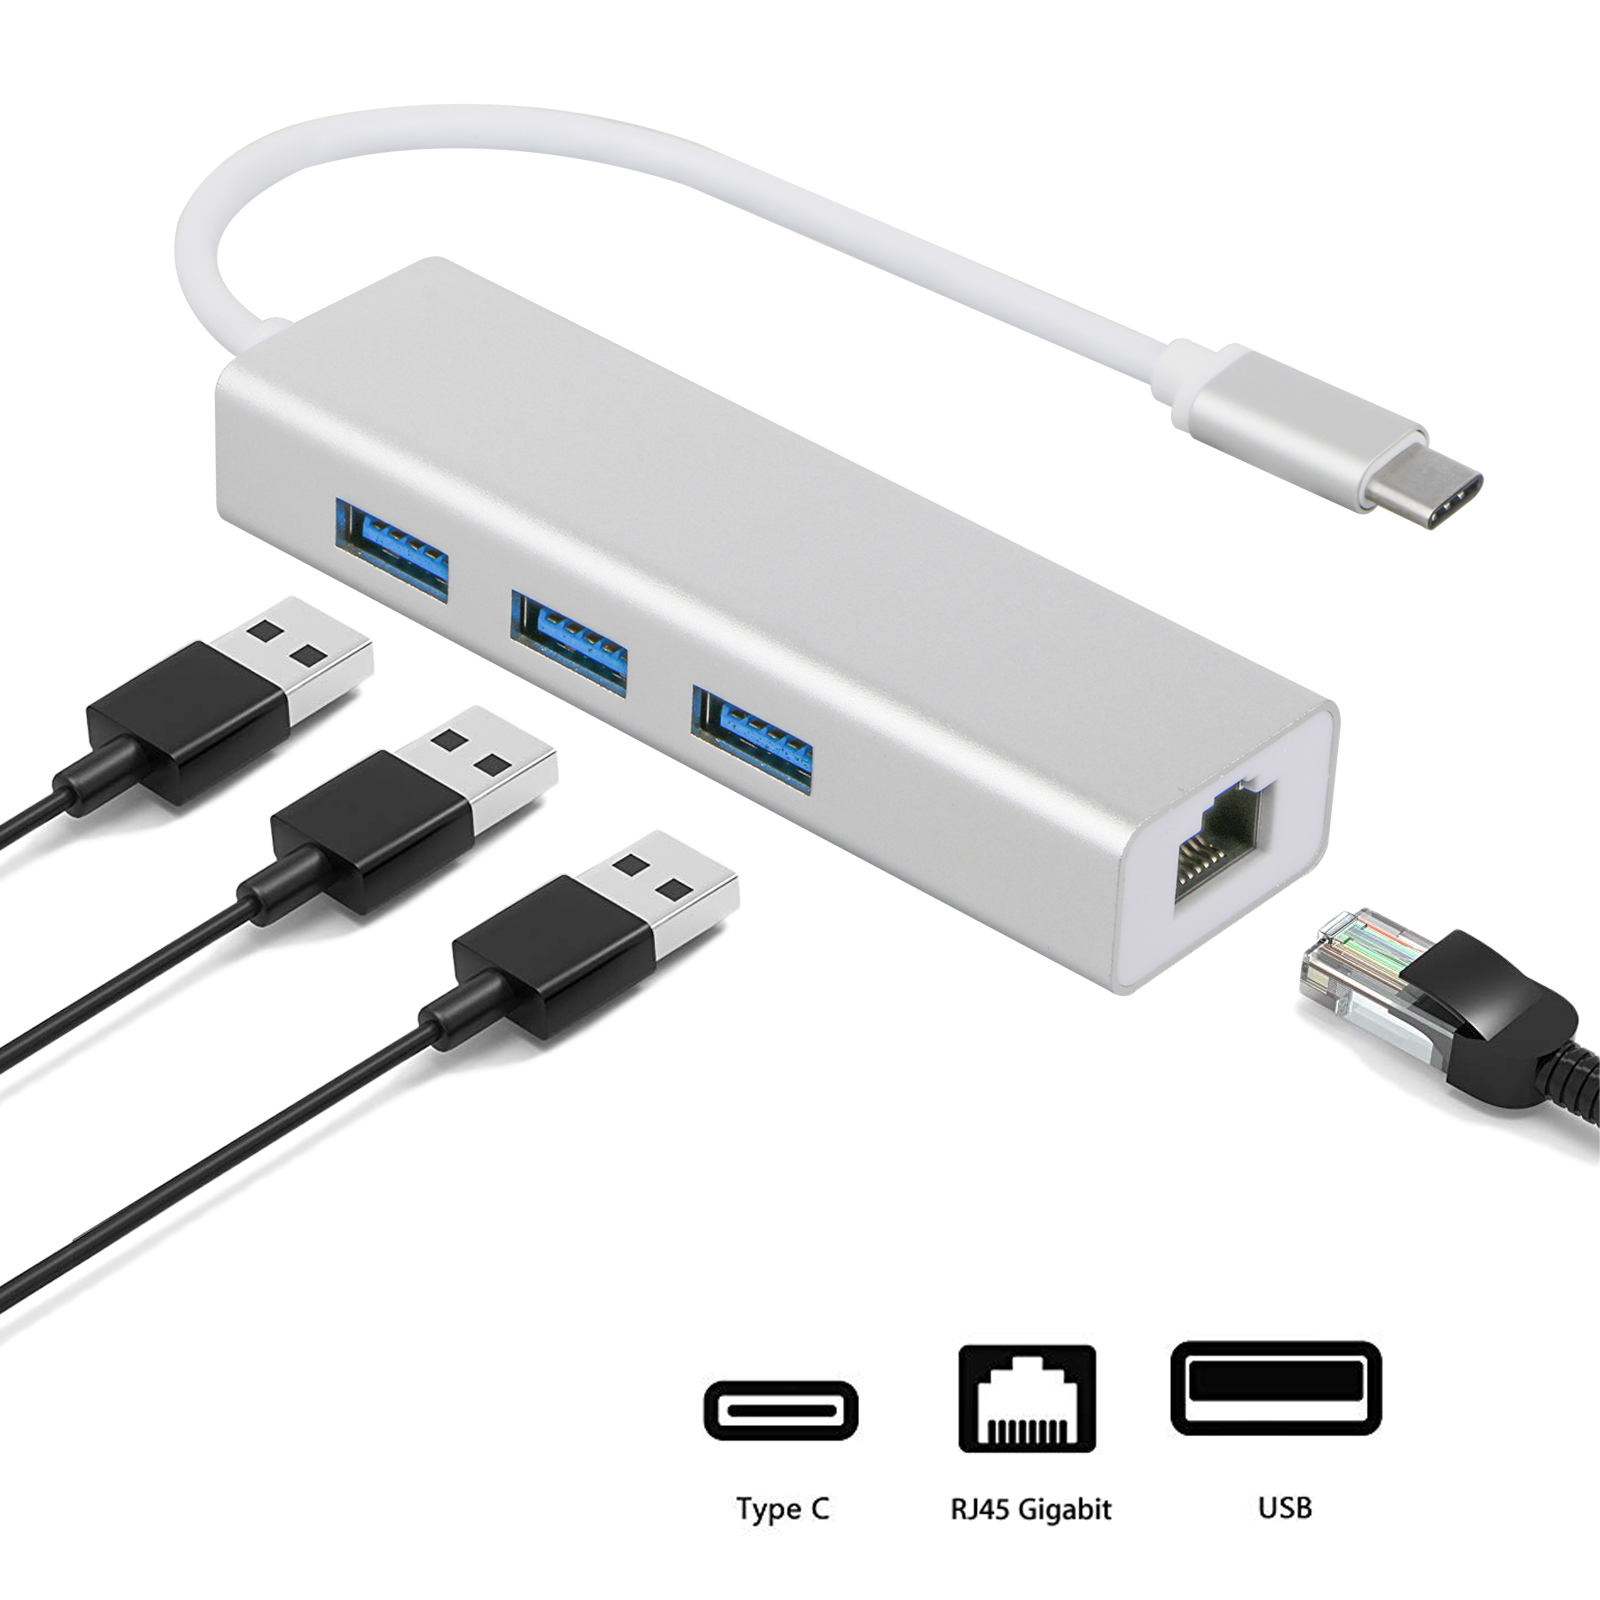 Type C to 3-Port USB 3.0 Hub Ethernet Lan RJ45 Network Adapter for Mac PC